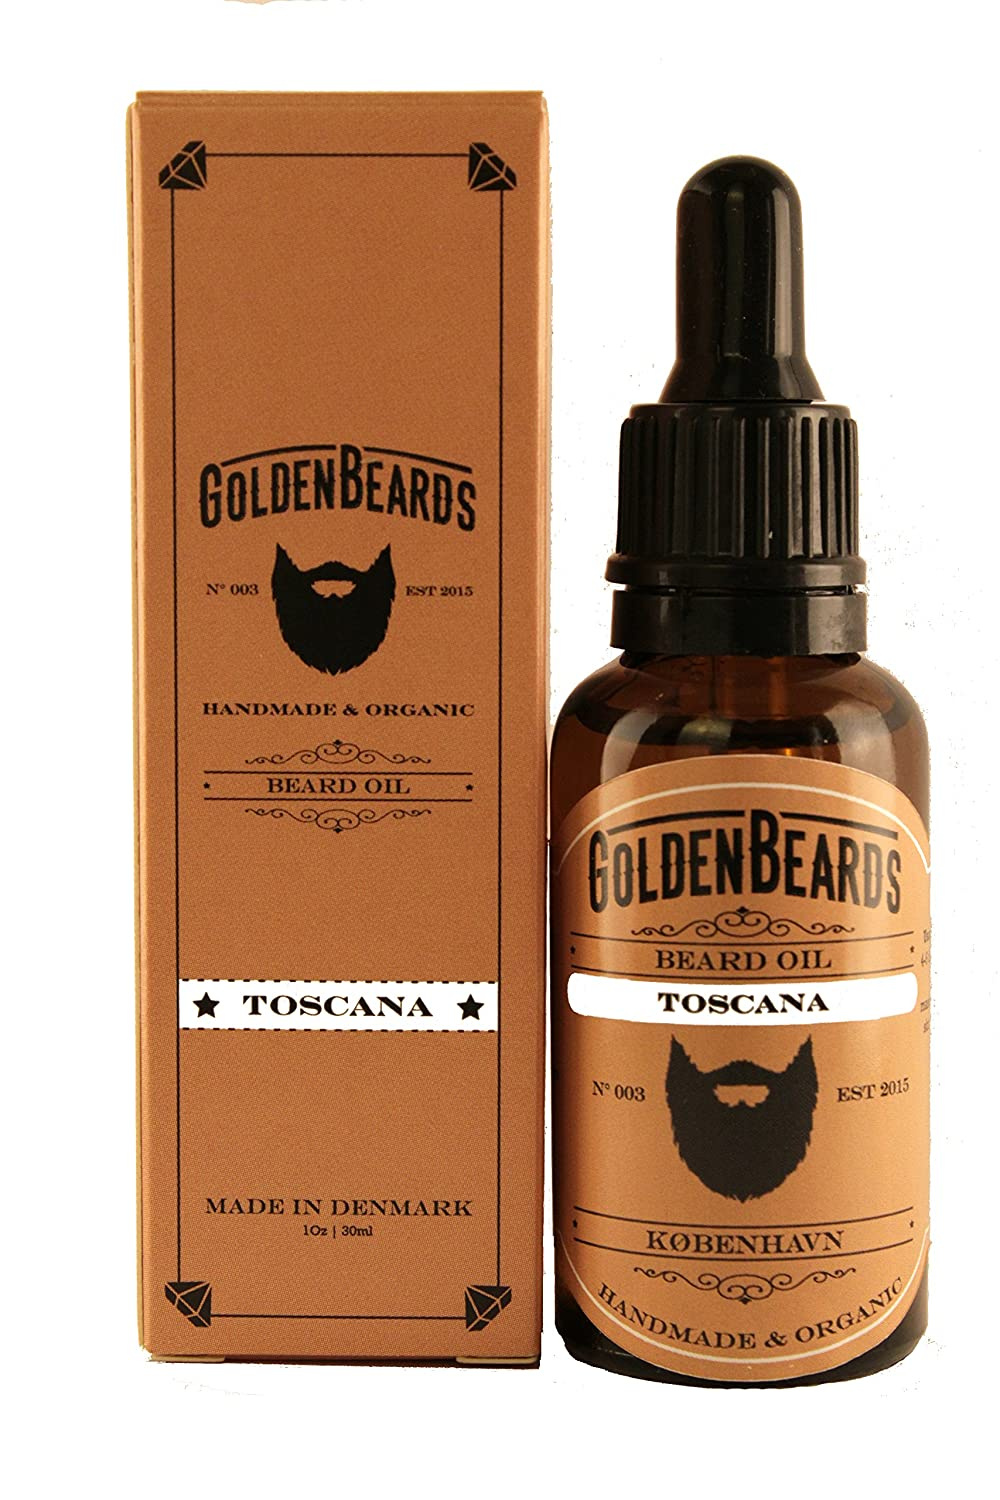 Organic Beard Oil – TOSCANA - 30ml *Golden Beards* | 100% Organic | Jojoba & Argan & Almond Oil for real Beards - Stop itching beard - the best growing beard - the best beard softener product and the perfect beard gift set or beard kit if you need